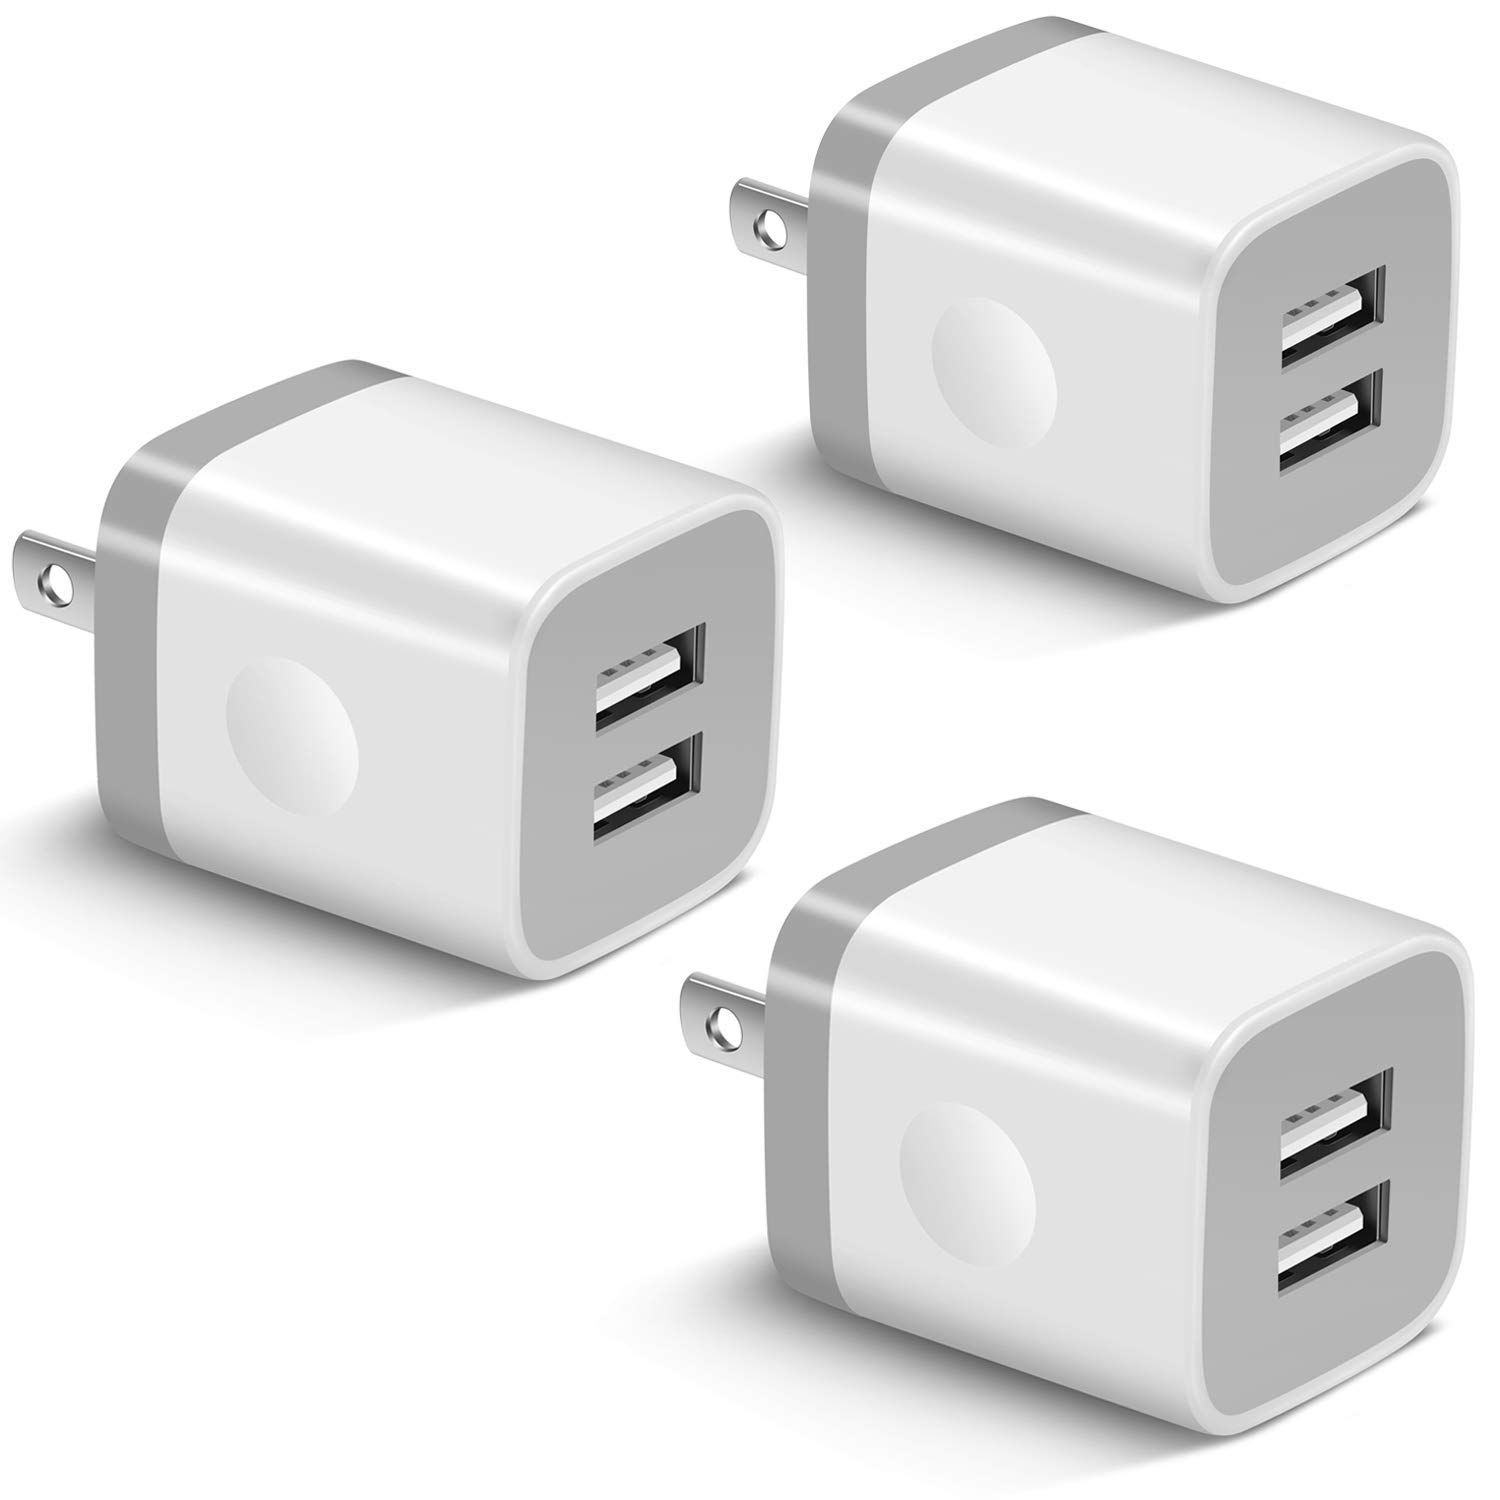 USB Wall Charger, BEST4ONE 3-Pack 2.1A/5V Dual Port USB Plug Power Adapter Charging Block Cube Compatible with iPhone 11 /Pro Max, XR/XS/X 8/7/6 Plus, Samsung, Moto, Kindle, Android Phone -White by BEST4ONE